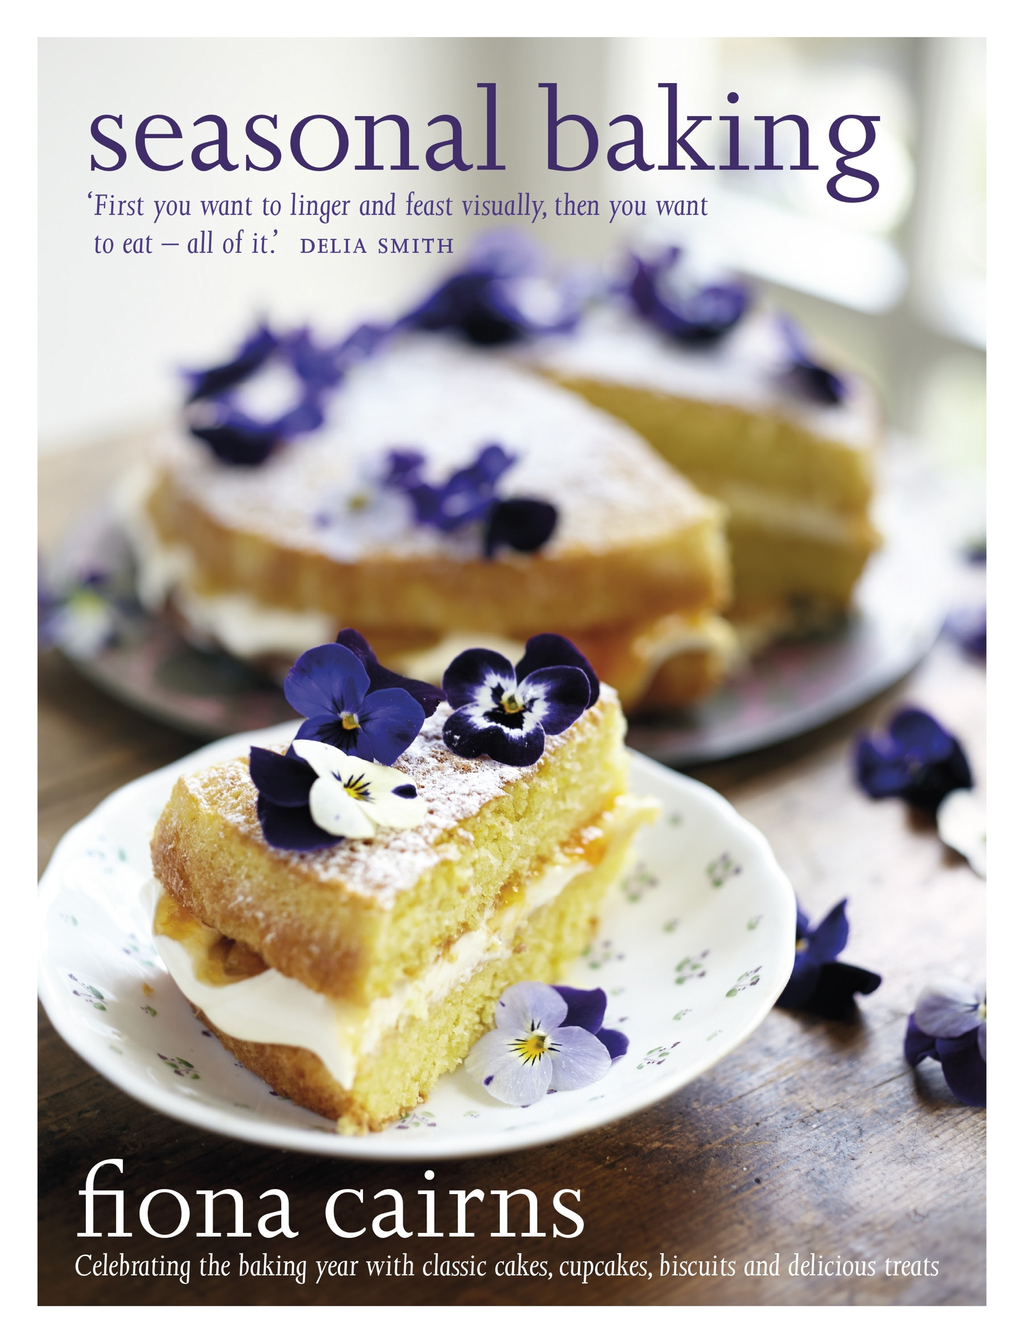 Seasonal Baking Celebrating the baking year with classic cakes,  cupcakes,  biscuits and delicious treats